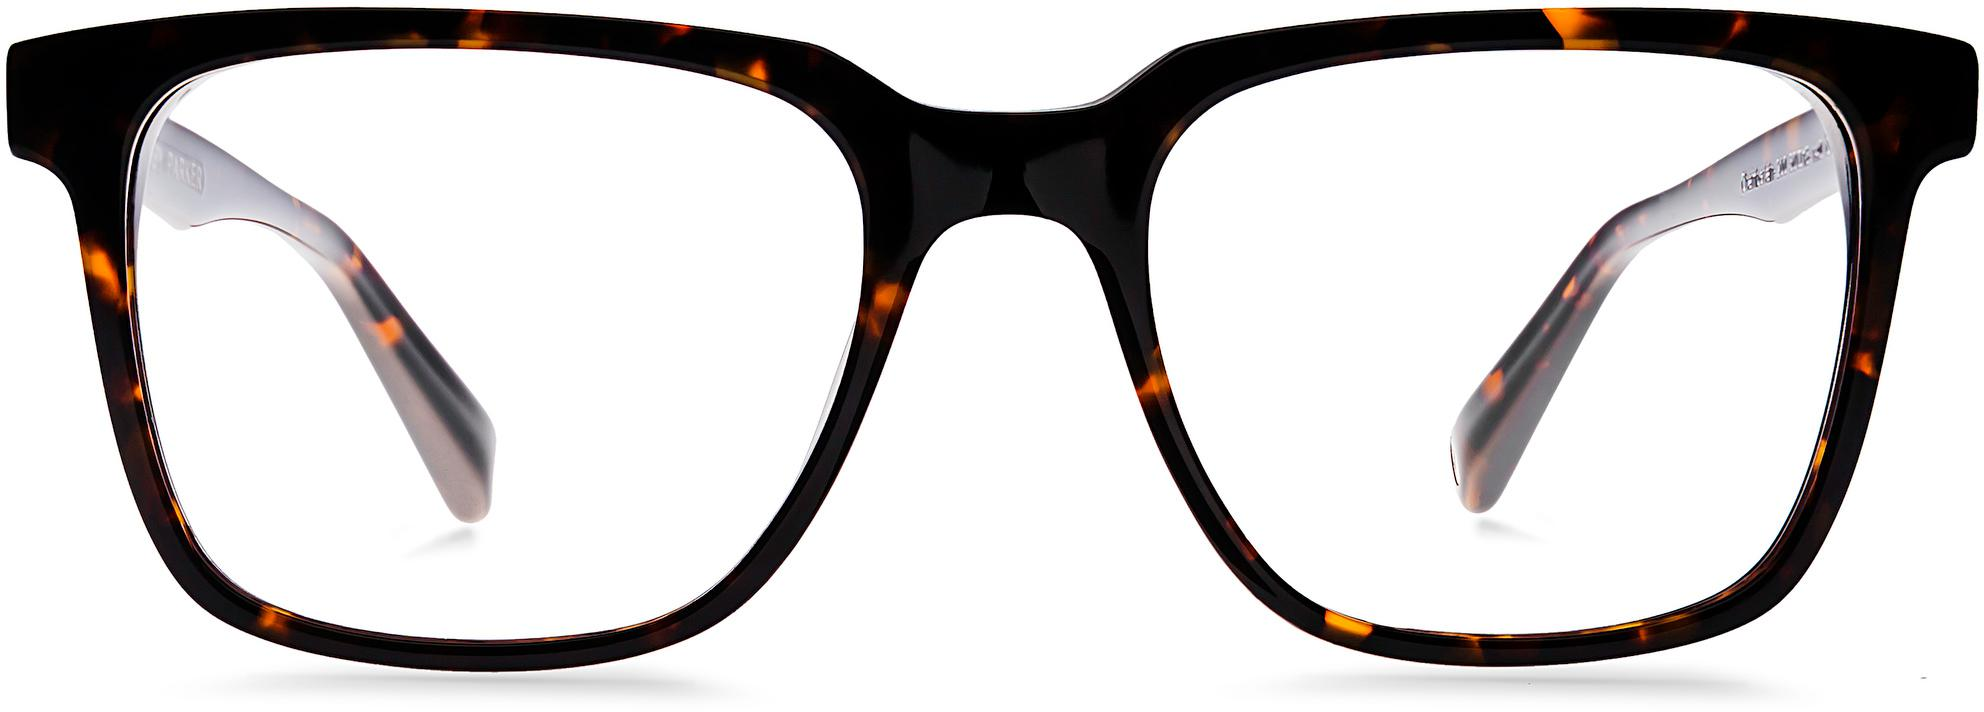 90c3623e95 Women s Eyeglasses